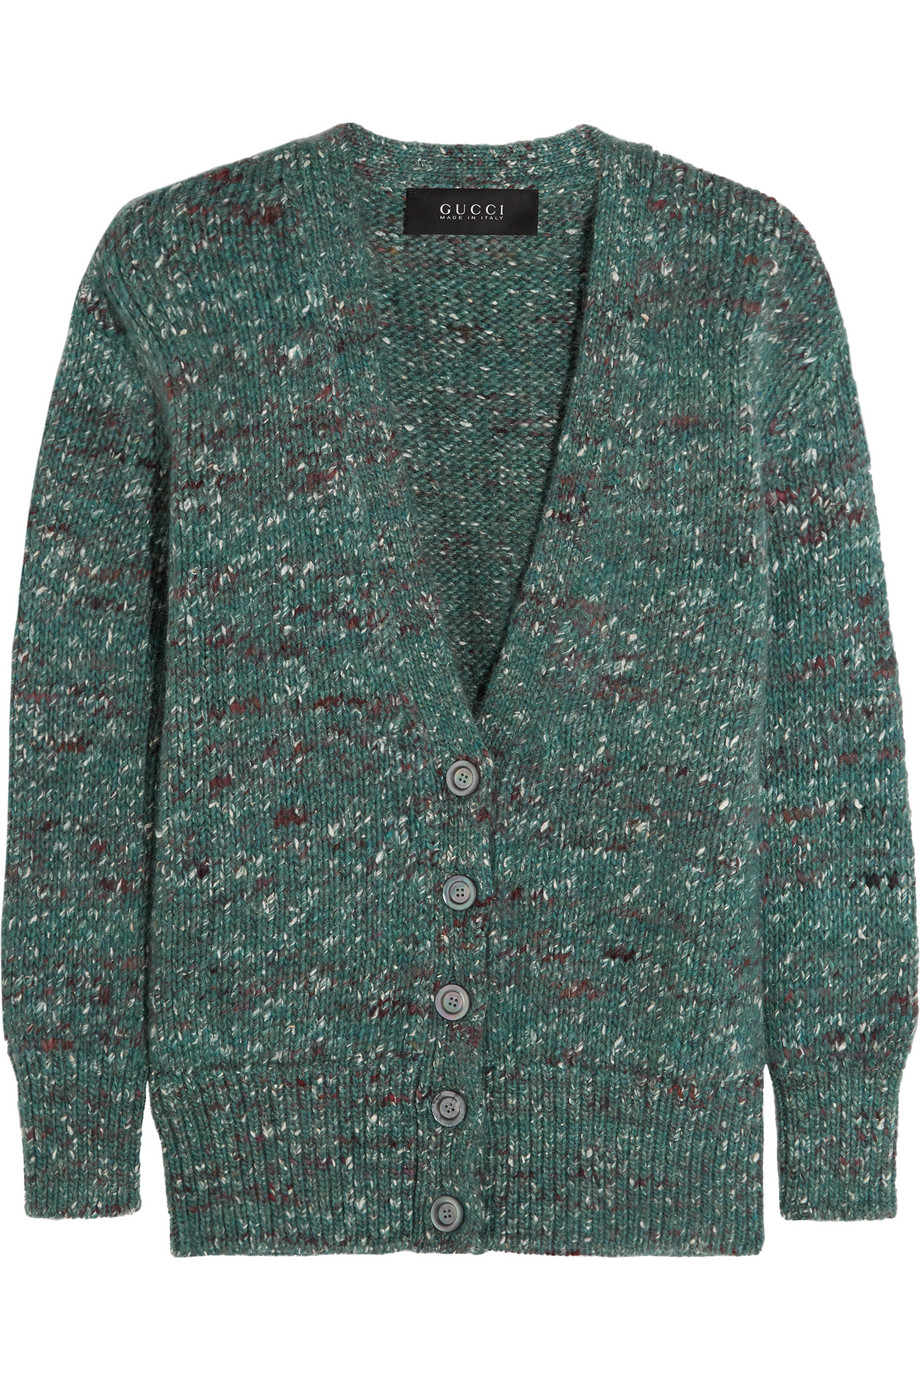 Gucci Mélange Wool-Blend Cardigan, Teal, Women's